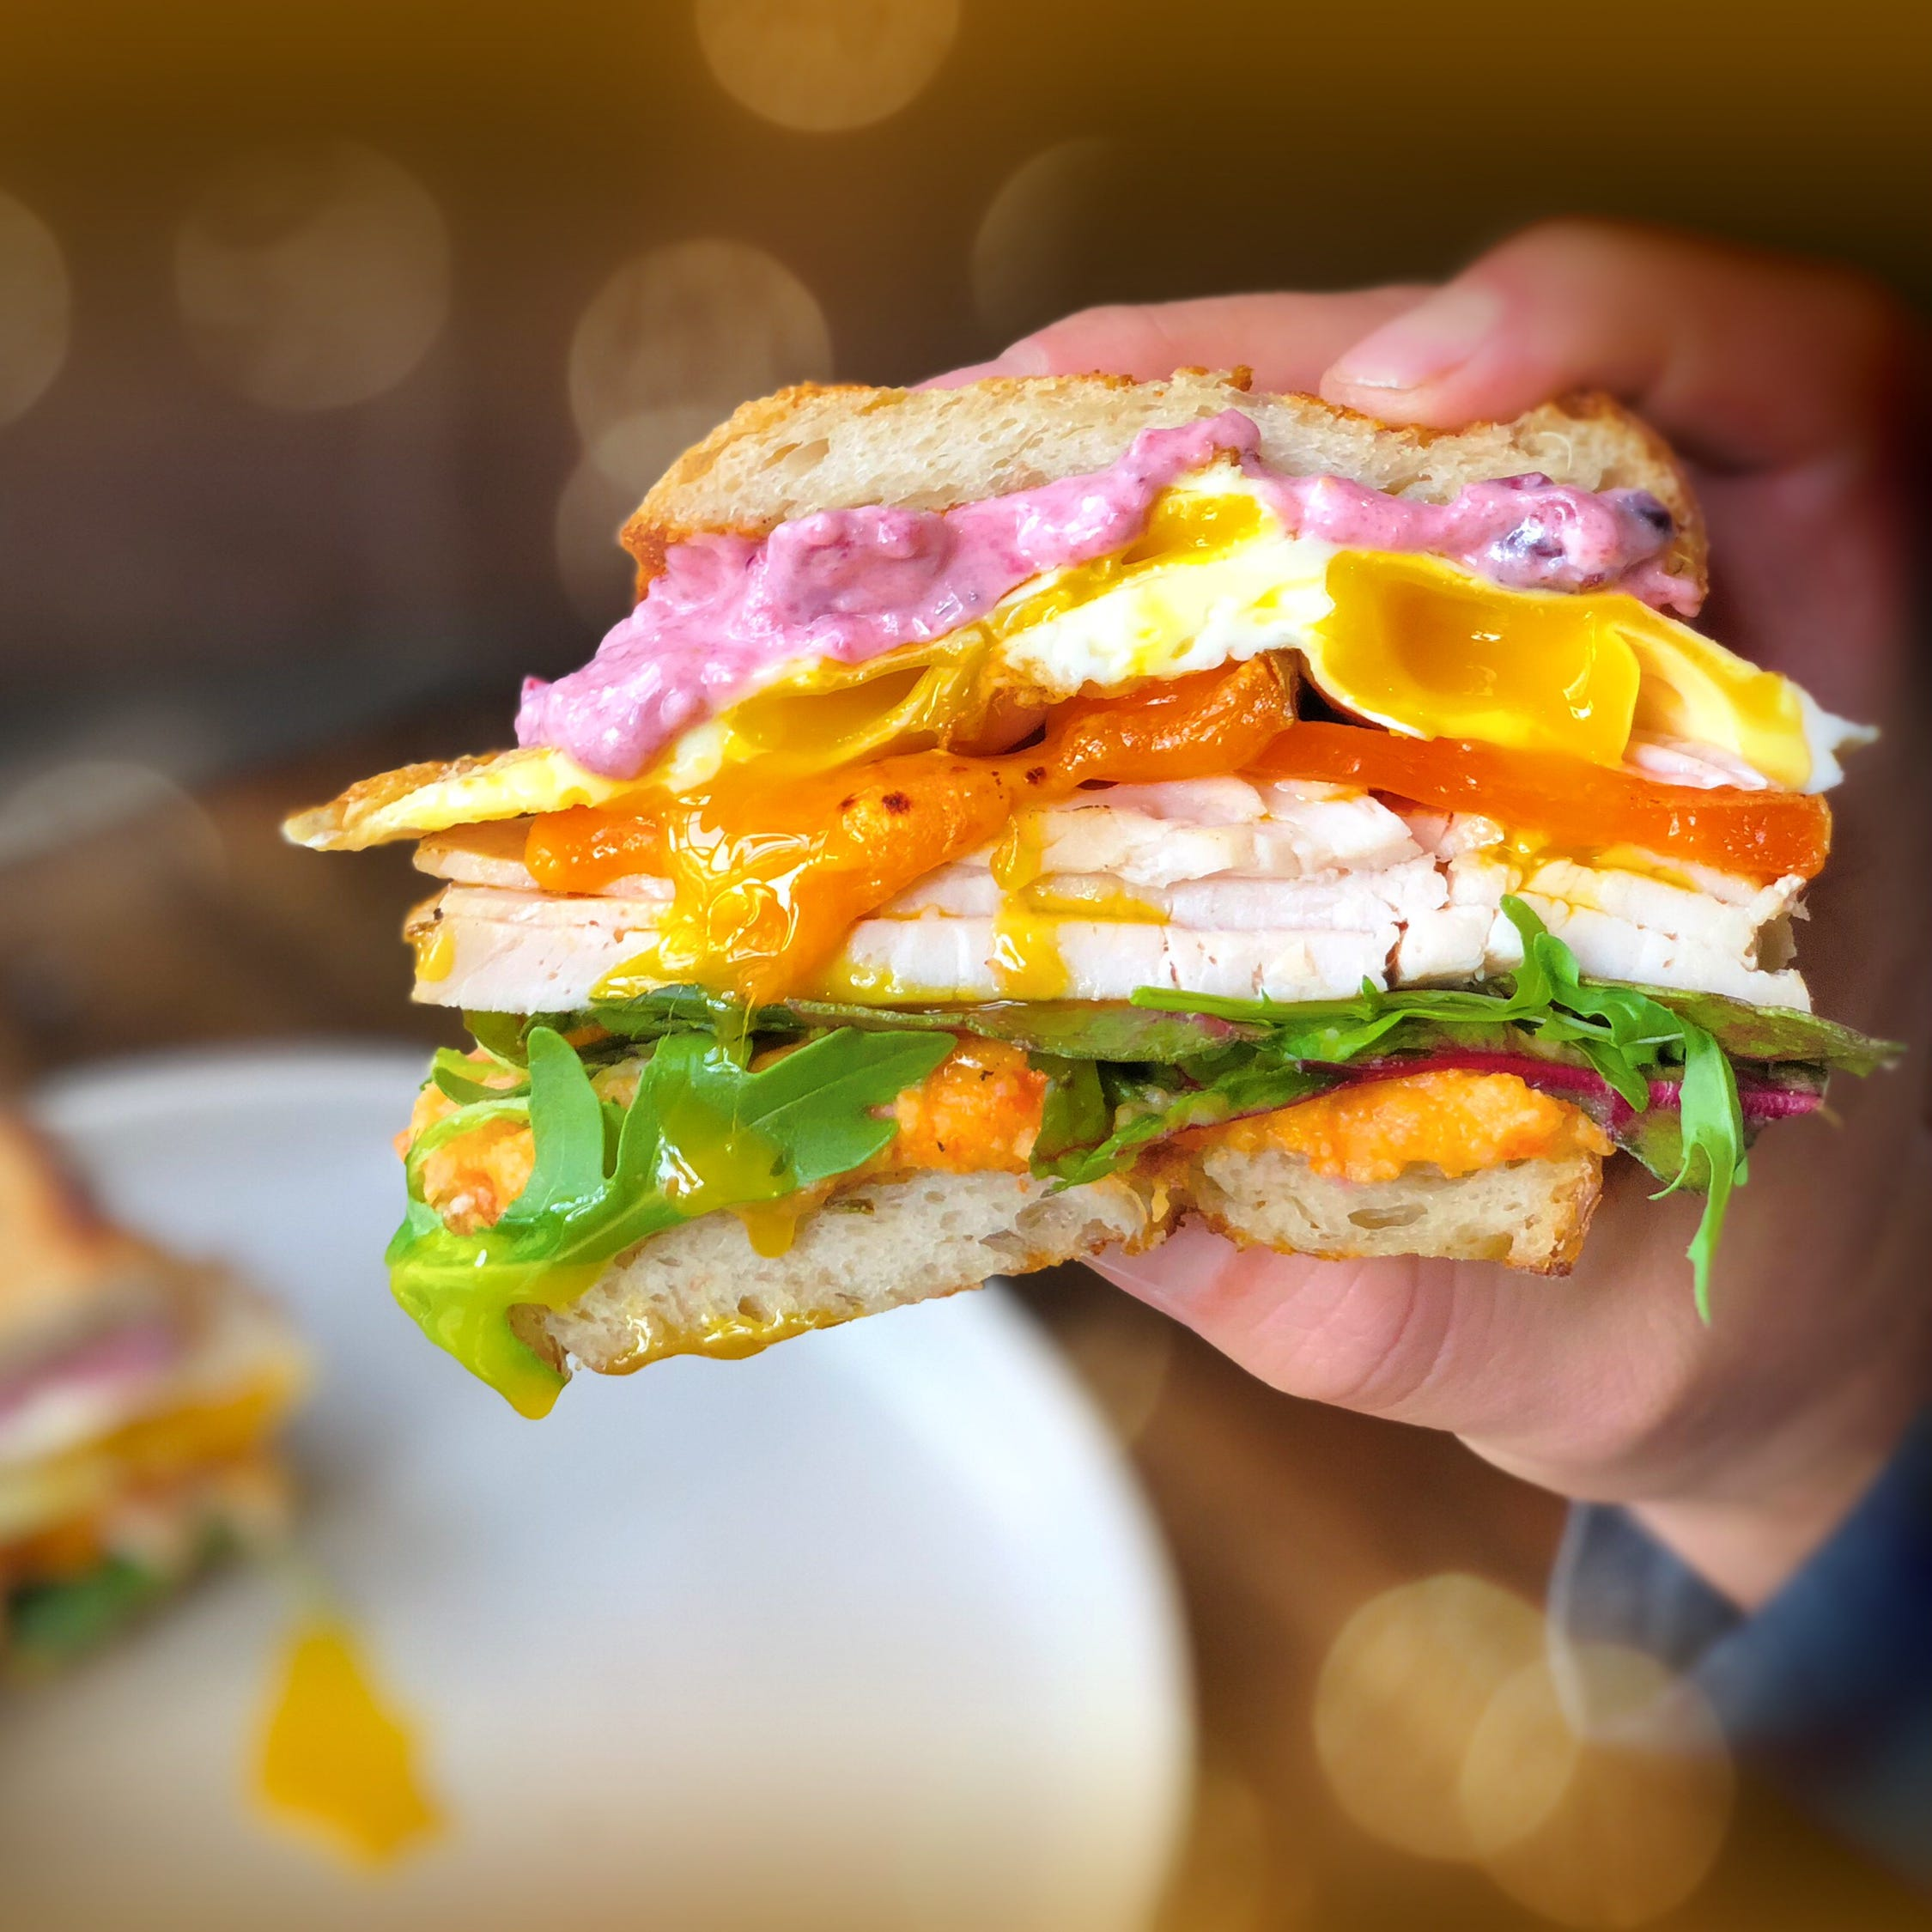 Where you see Thanksgiving leftovers, Milwaukee chefs see the makings of an awesome sandwich